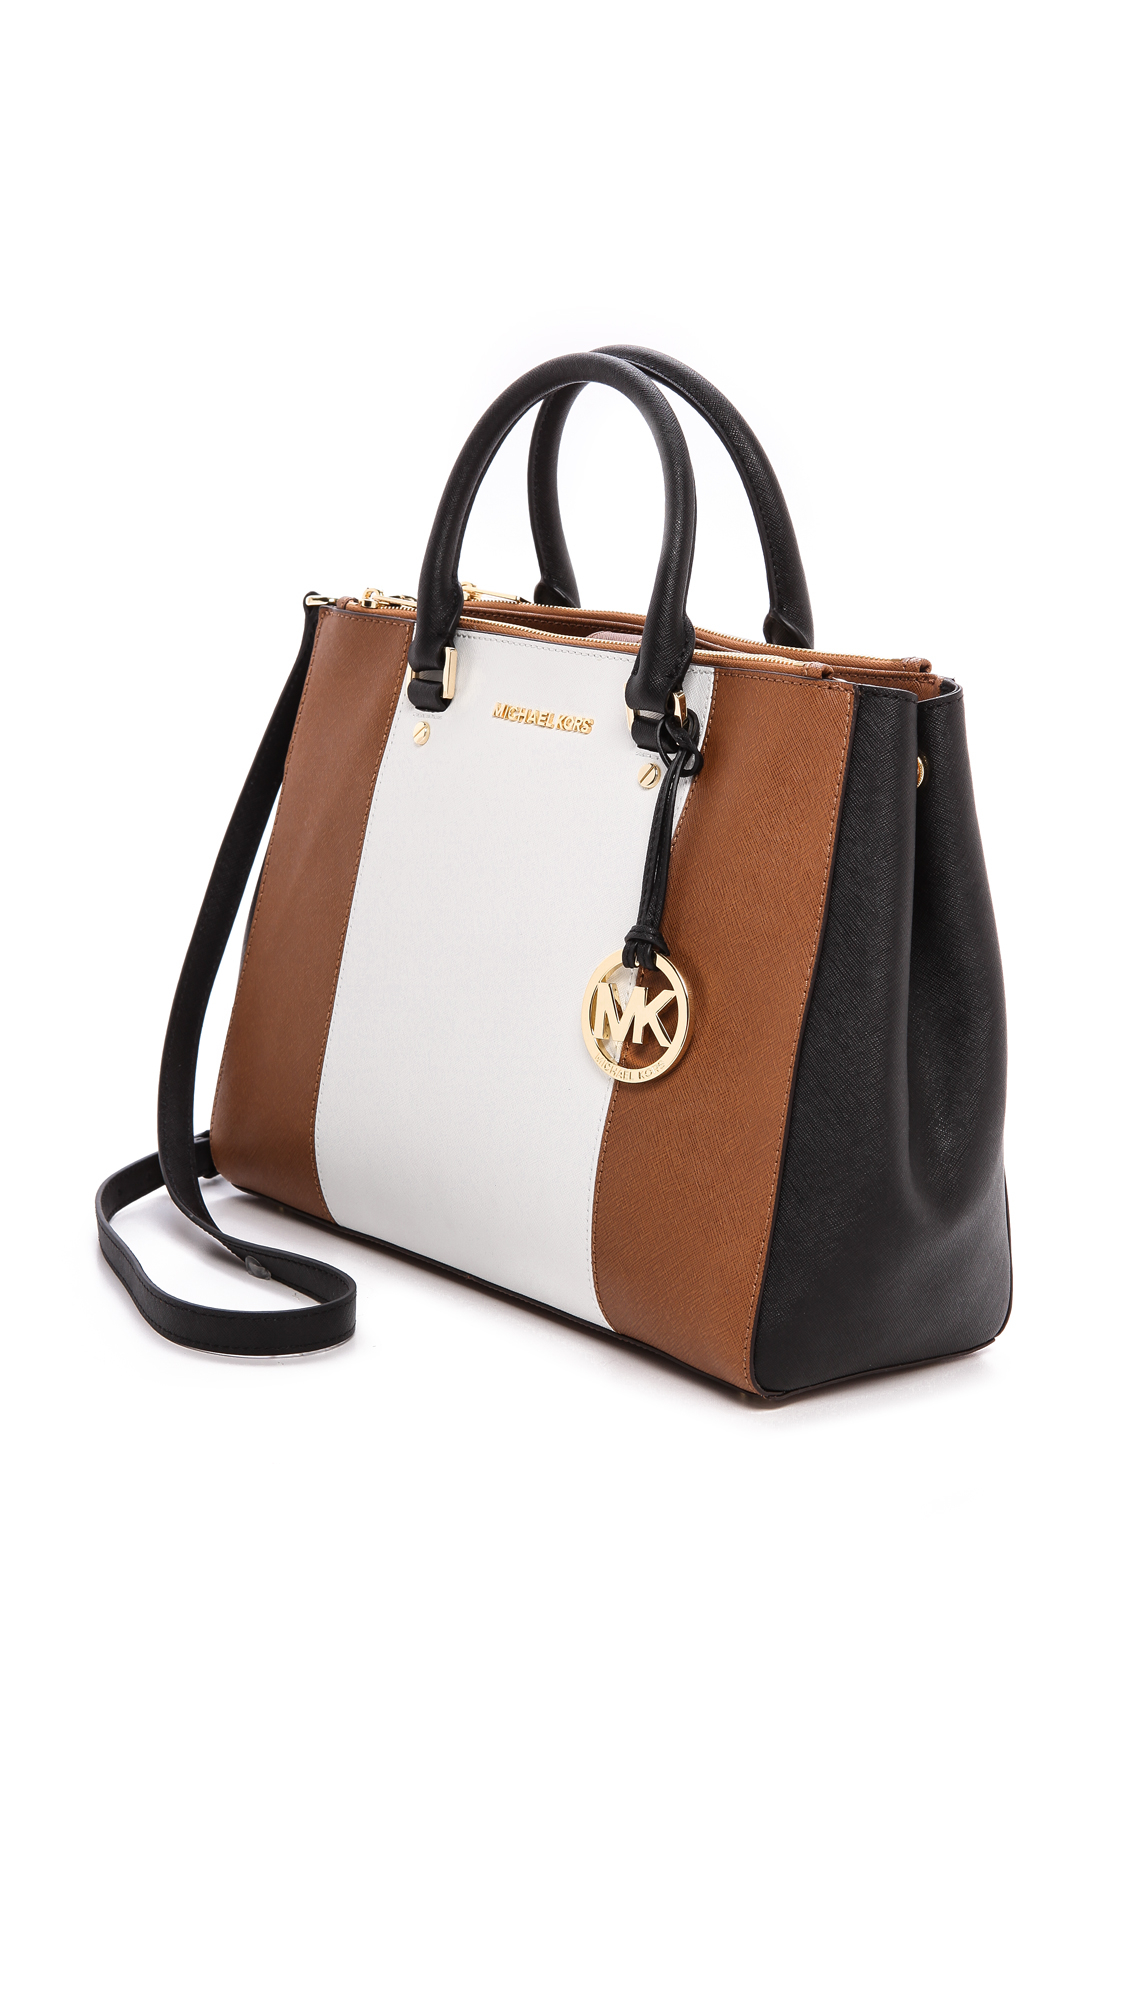 757f9c1307f1 Lyst - MICHAEL Michael Kors Sutton Center Stripe Large Satchel ...